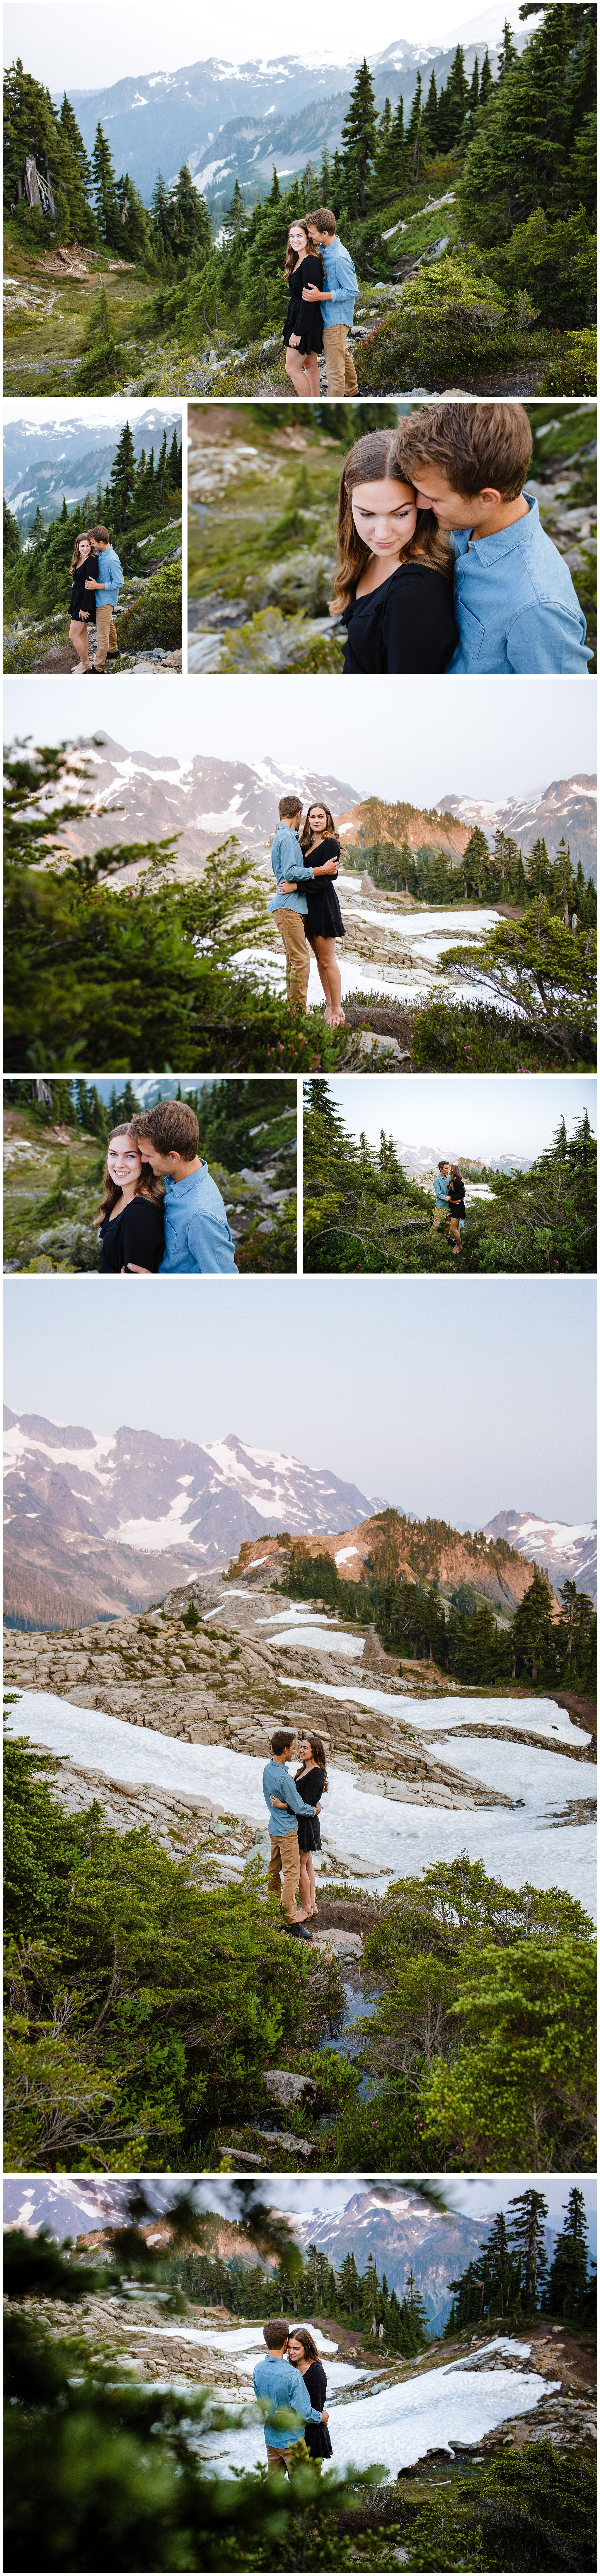 Mt Baker Artist Point Engagement Photography Mountain Inspo Couples Photographer Evening Romantic_0005.jpg